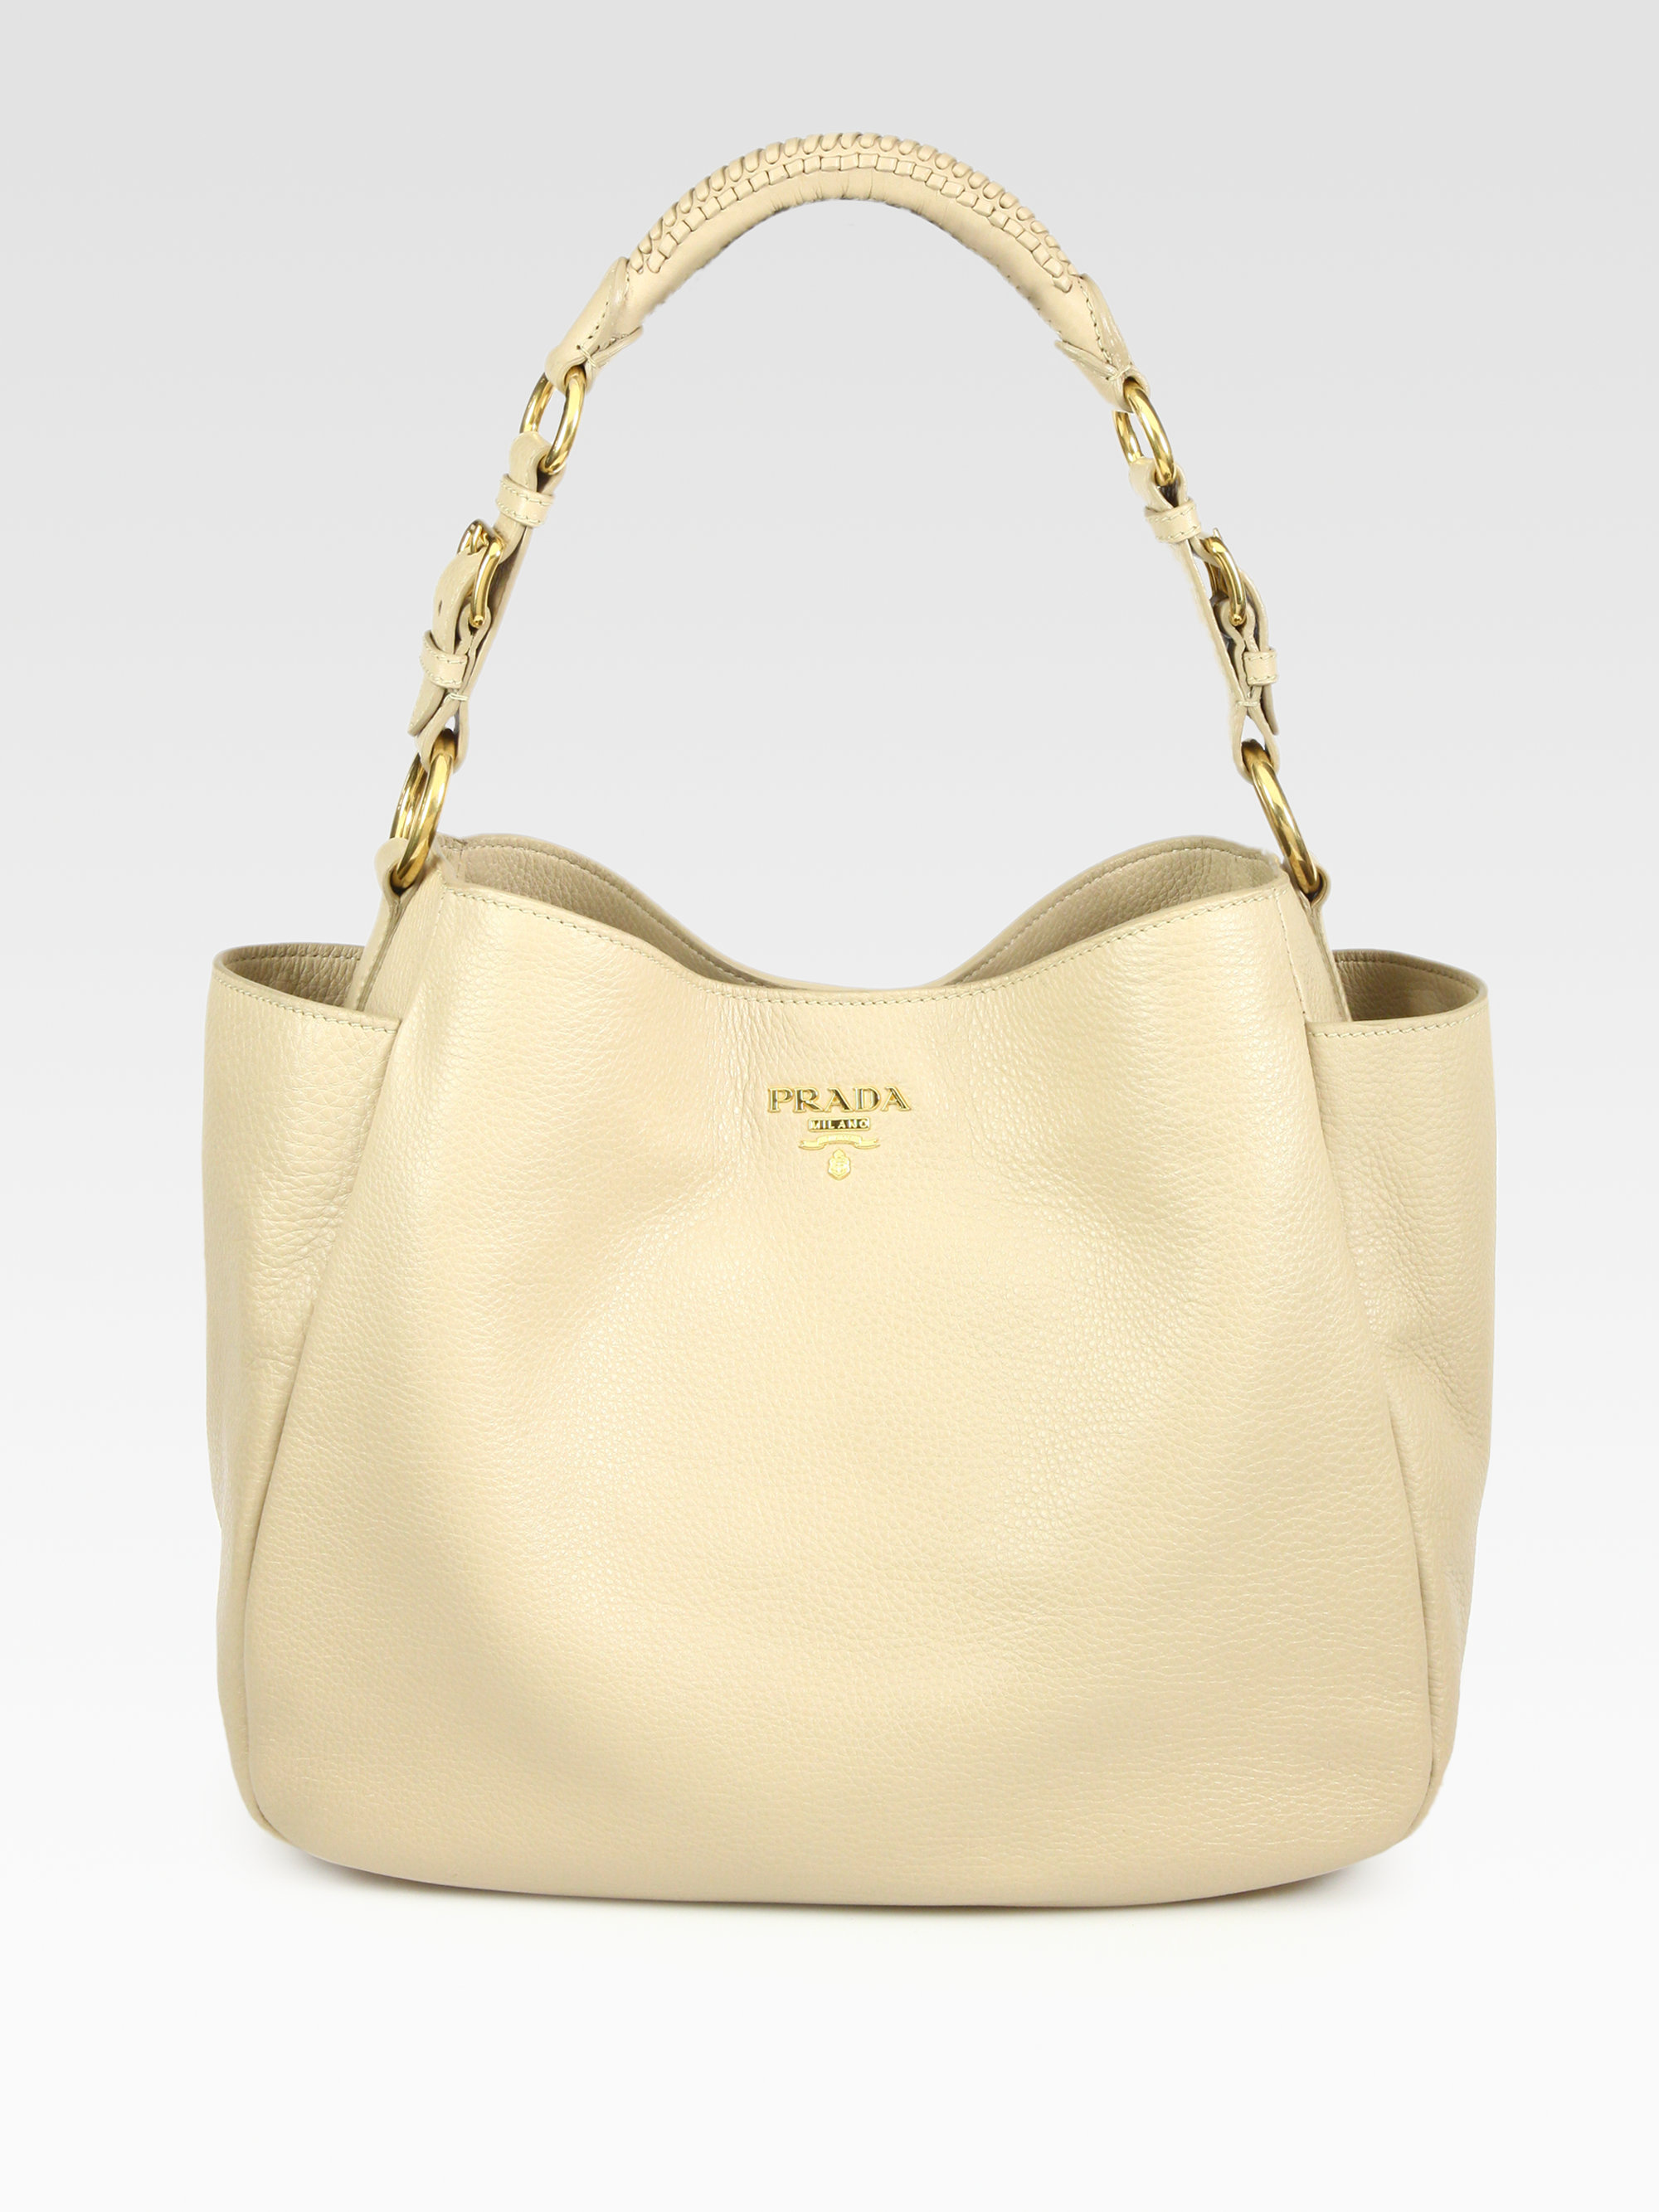 b63898cff623 ... coupon code lyst prada vitello daino hobo bag in natural dcede 1d20c